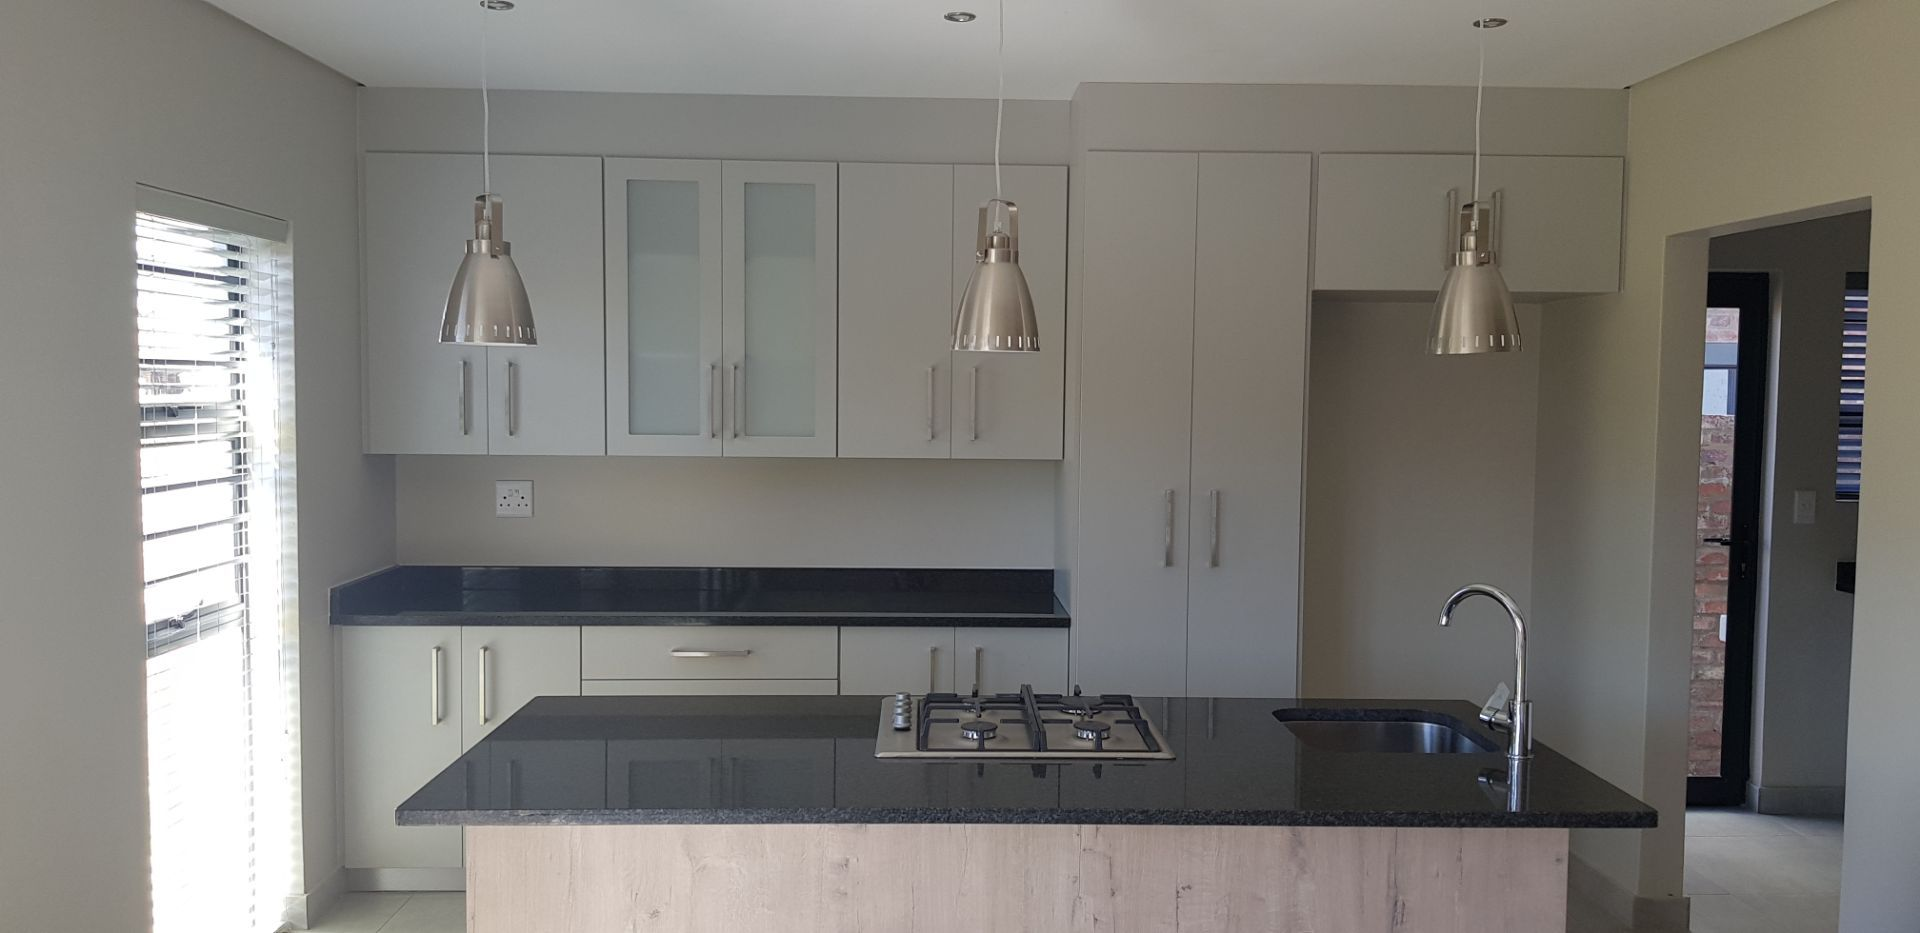 House in Lifestyle Estate - 20190712_112228.jpg